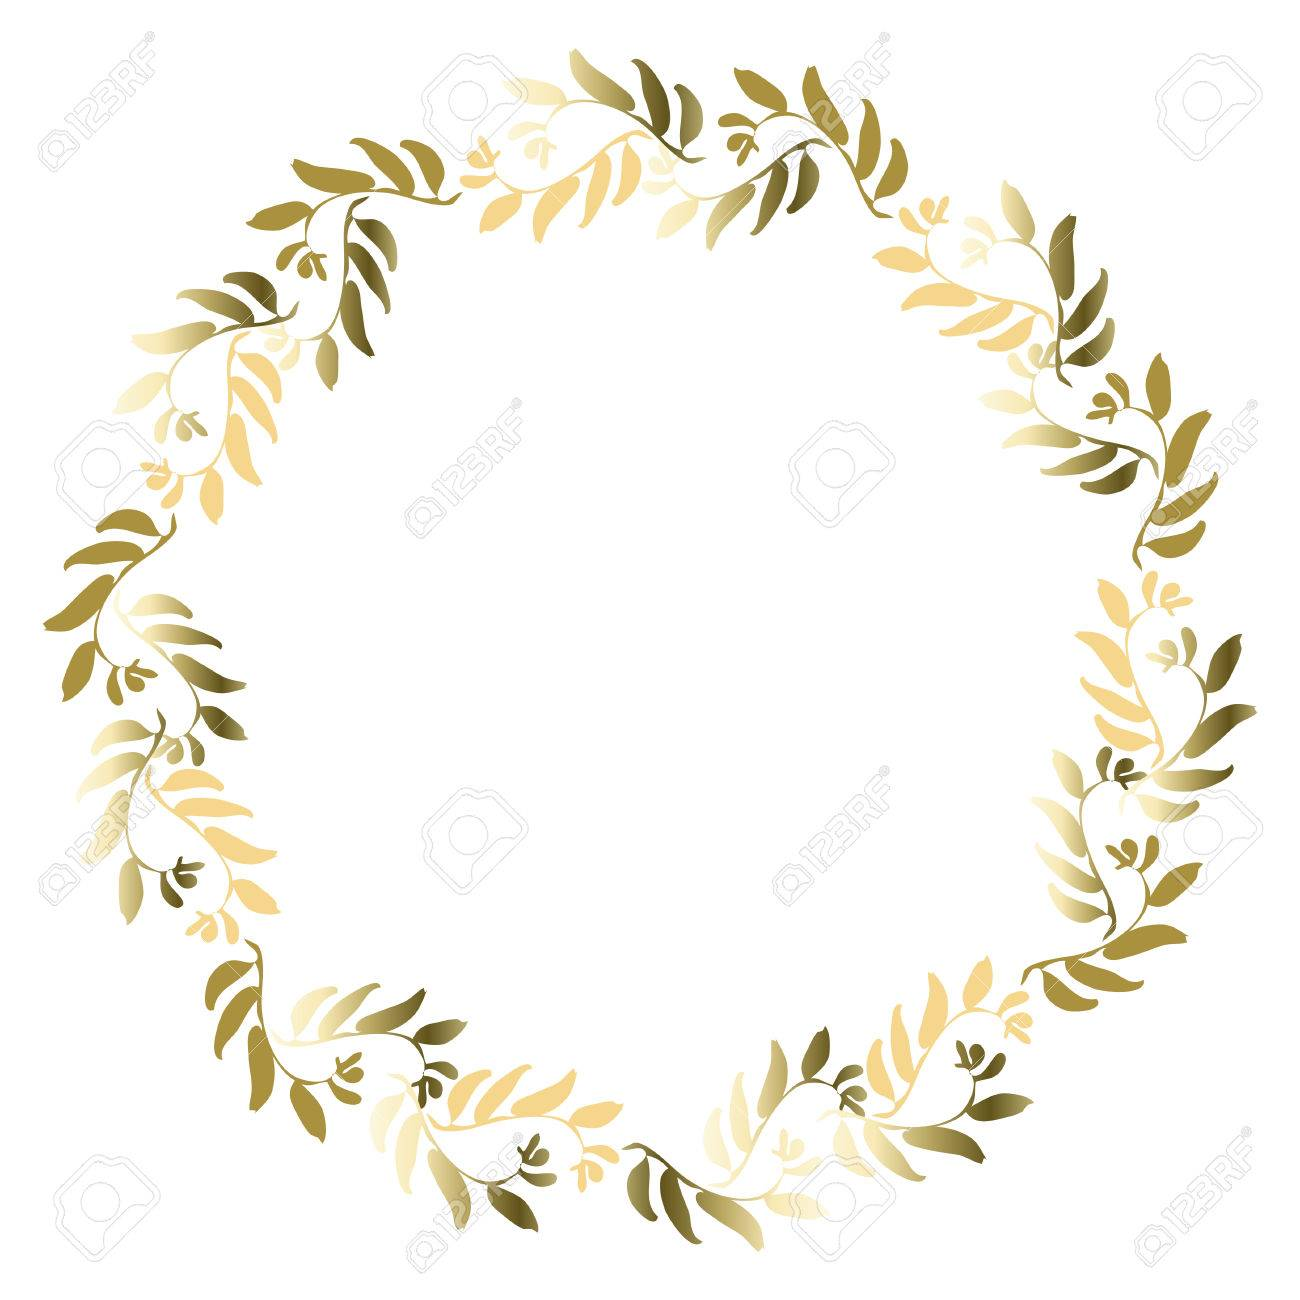 Floral Gold Circle Frame For Greeting Card, Invitation, Wedding ...